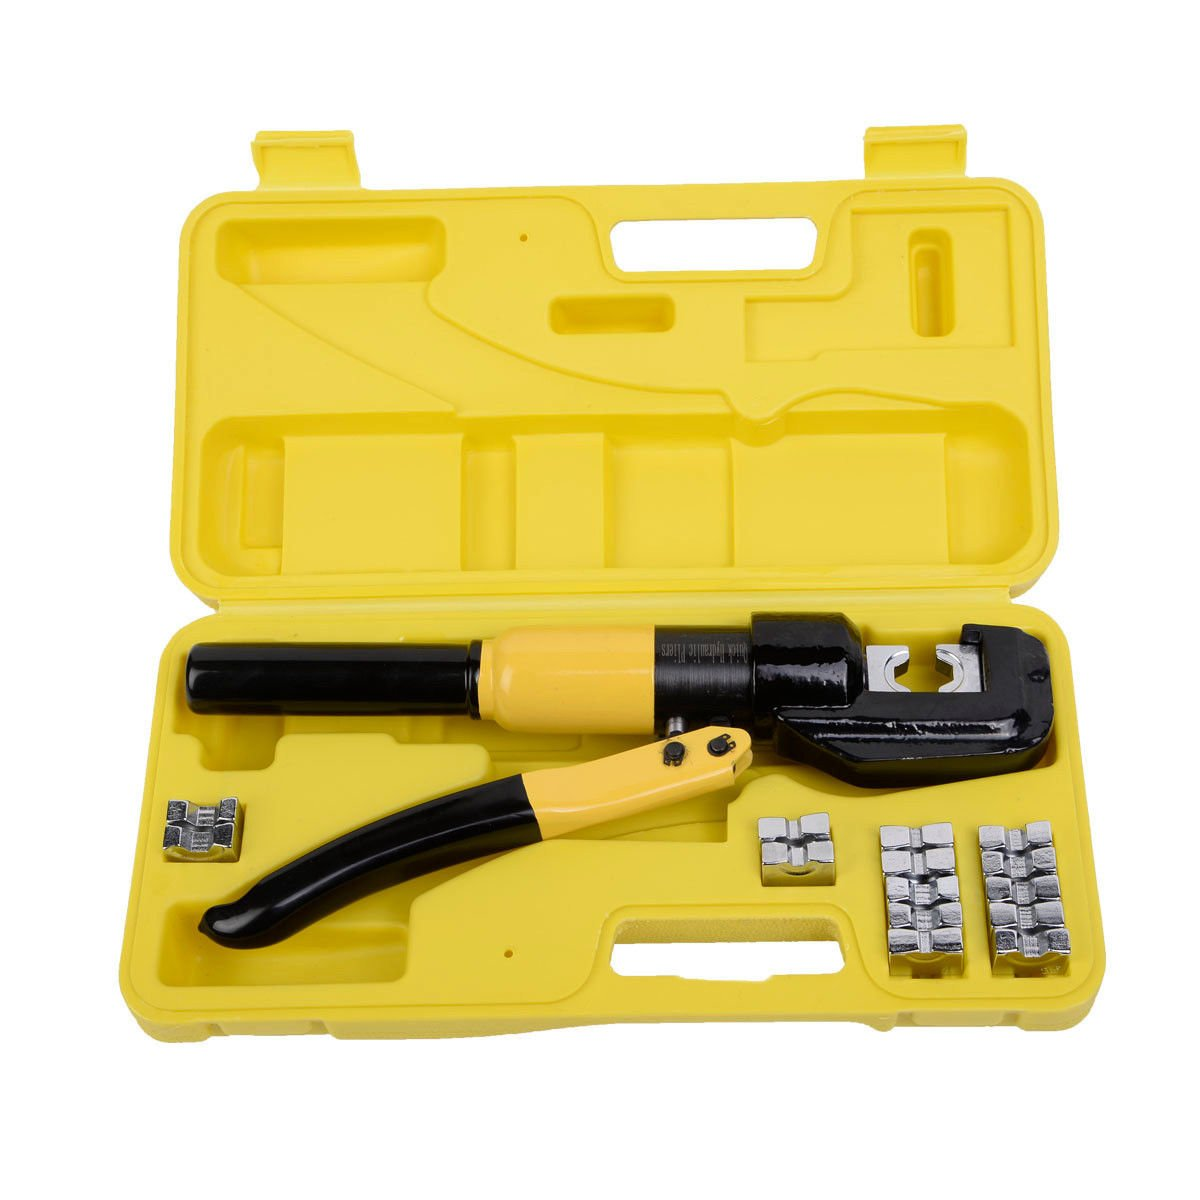 Toolsempire 8 Ton Hydraulic Wire Crimper Battery Cable Lug Terminal Electrical Crimping Tool Kit